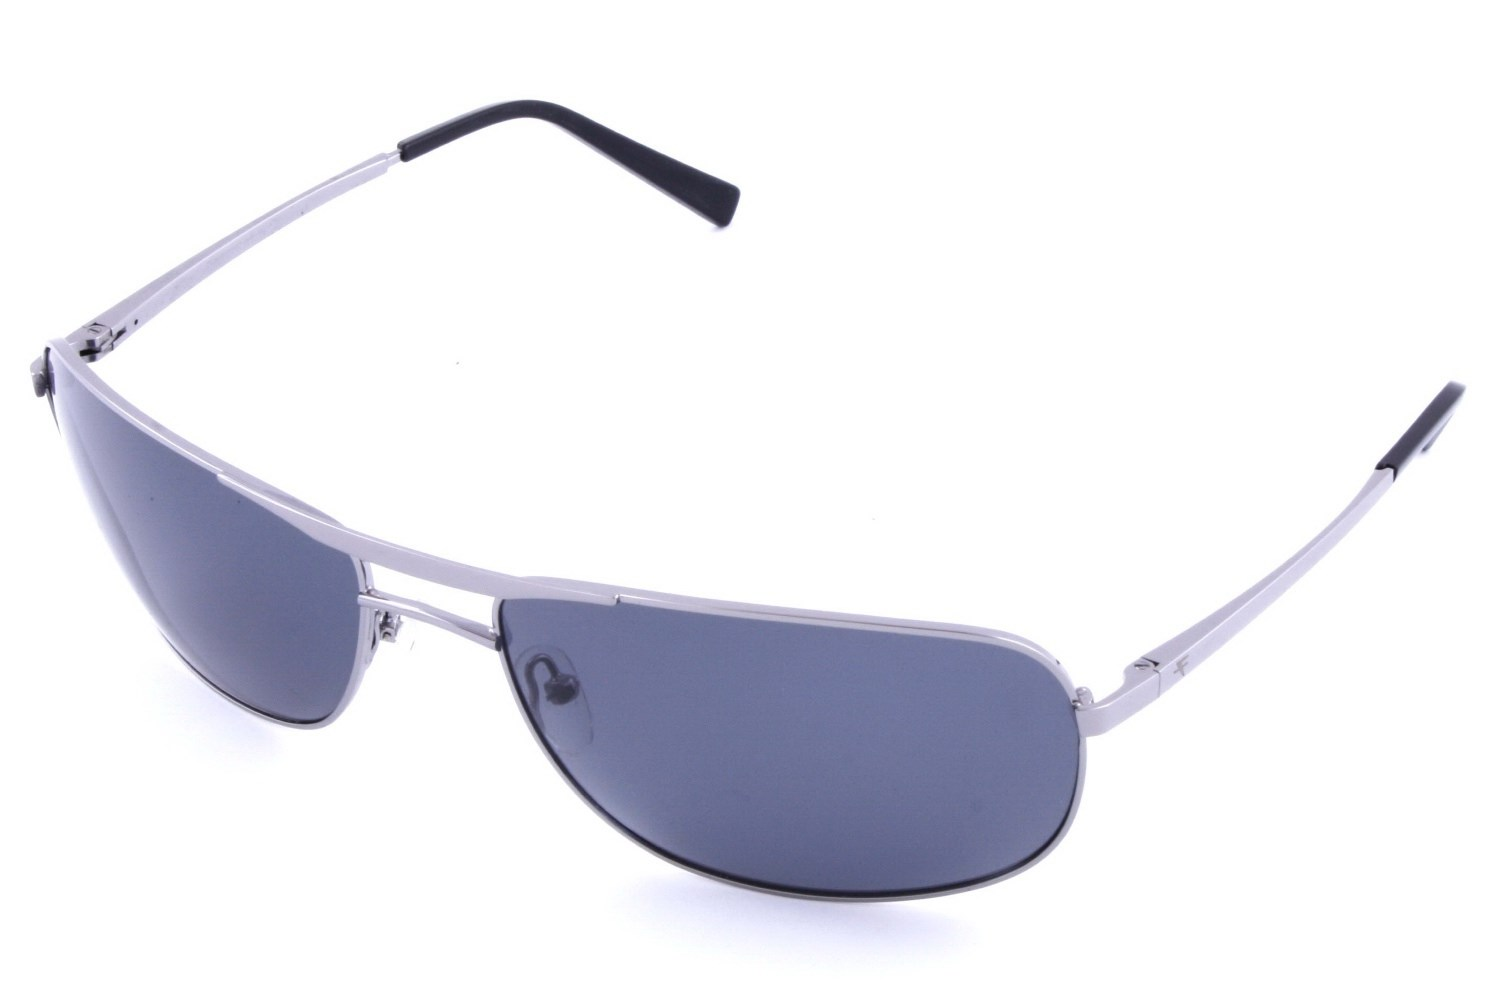 Fatheadz The Law XL 70 Polarized